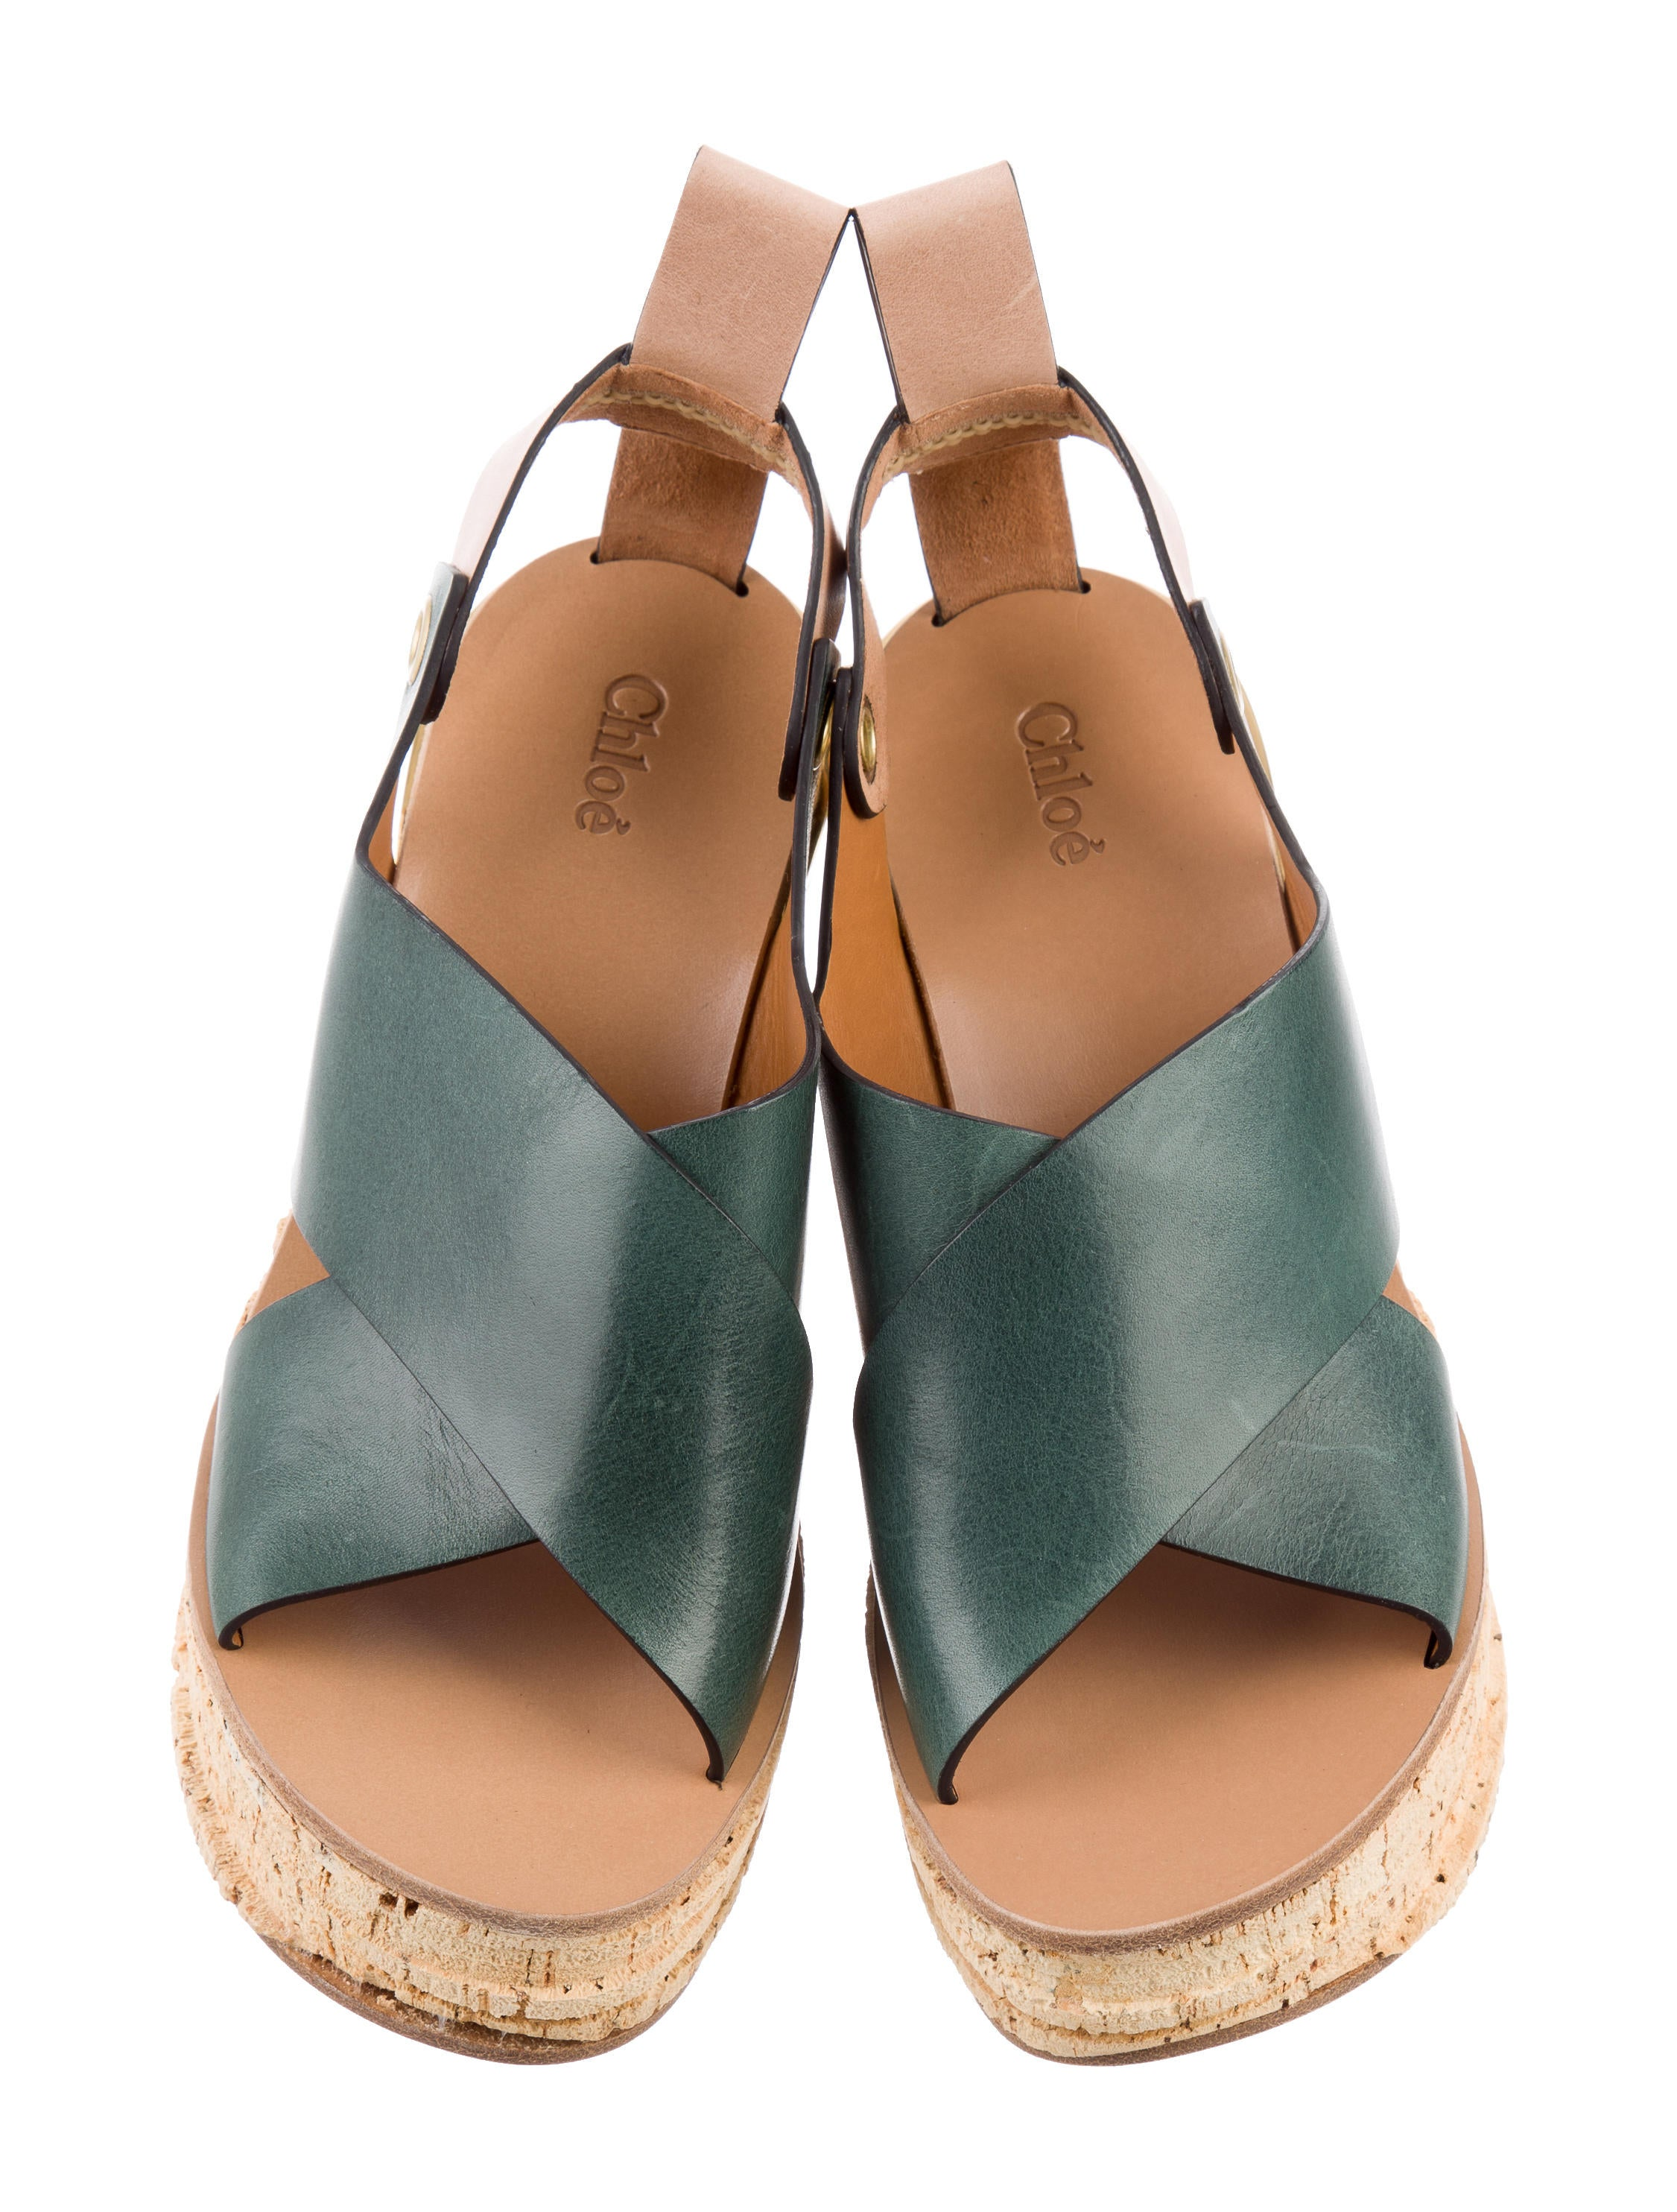 Chloé Carve Leather Cork Wedges w/ Tags discount Manchester footaction cheap online buy cheap cheap clearance Inexpensive free shipping factory outlet usa8Ks